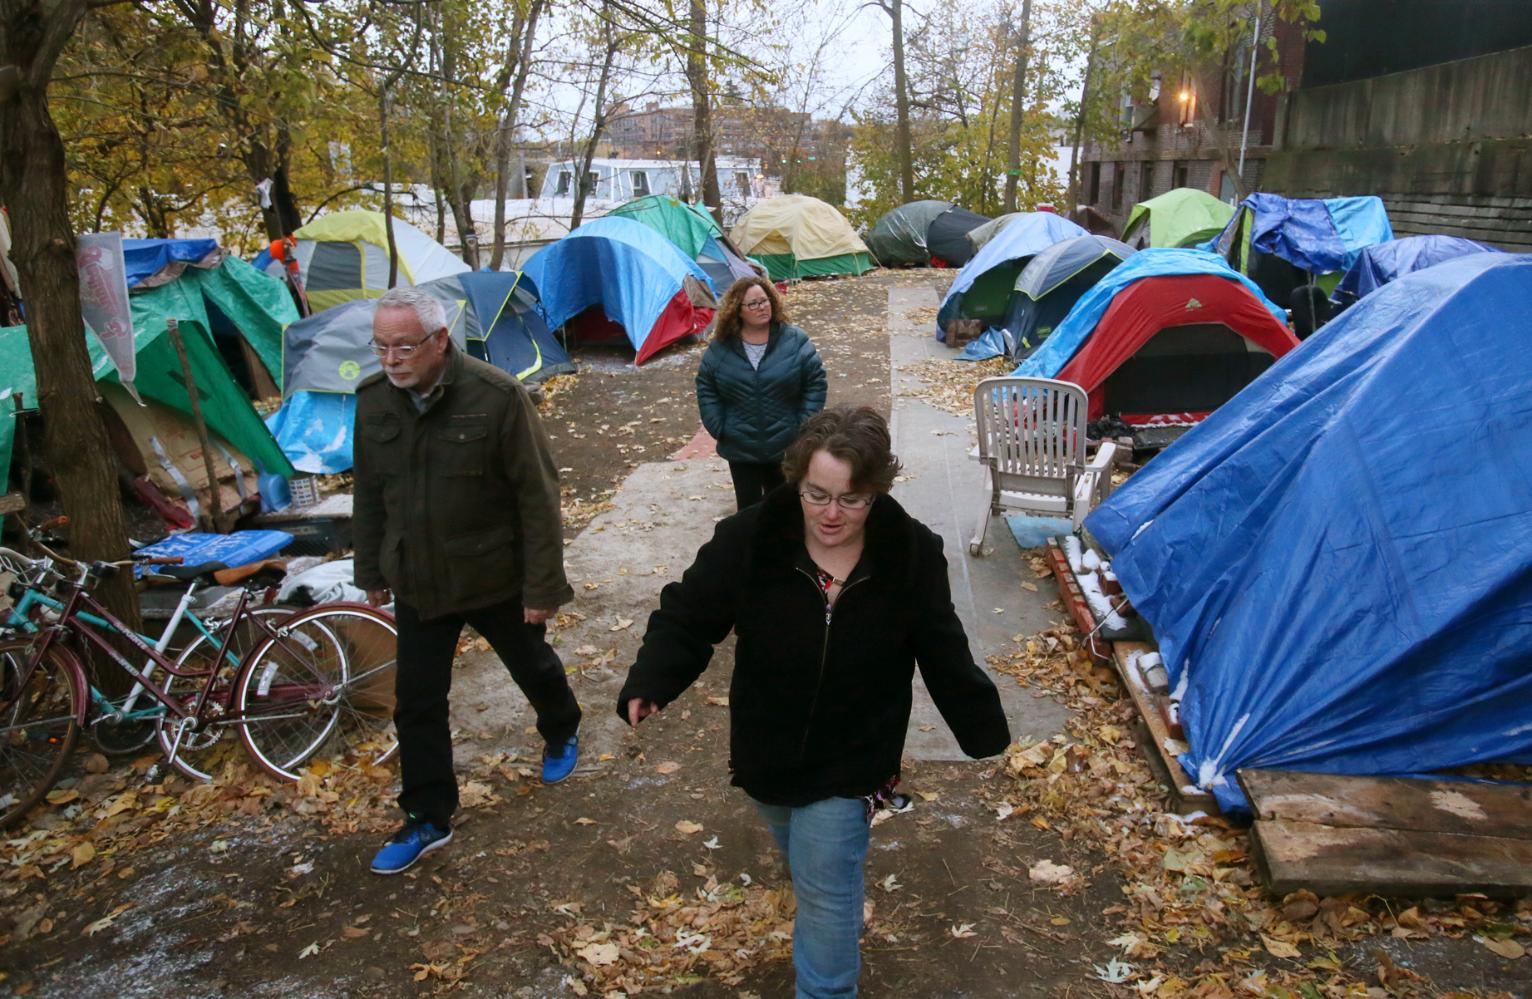 Ohio Tent City Is a Refuge for the Homeless and Displaced. | Ohio News | US News & Ohio Tent City Is a Refuge for the Homeless and Displaced. | Ohio ...